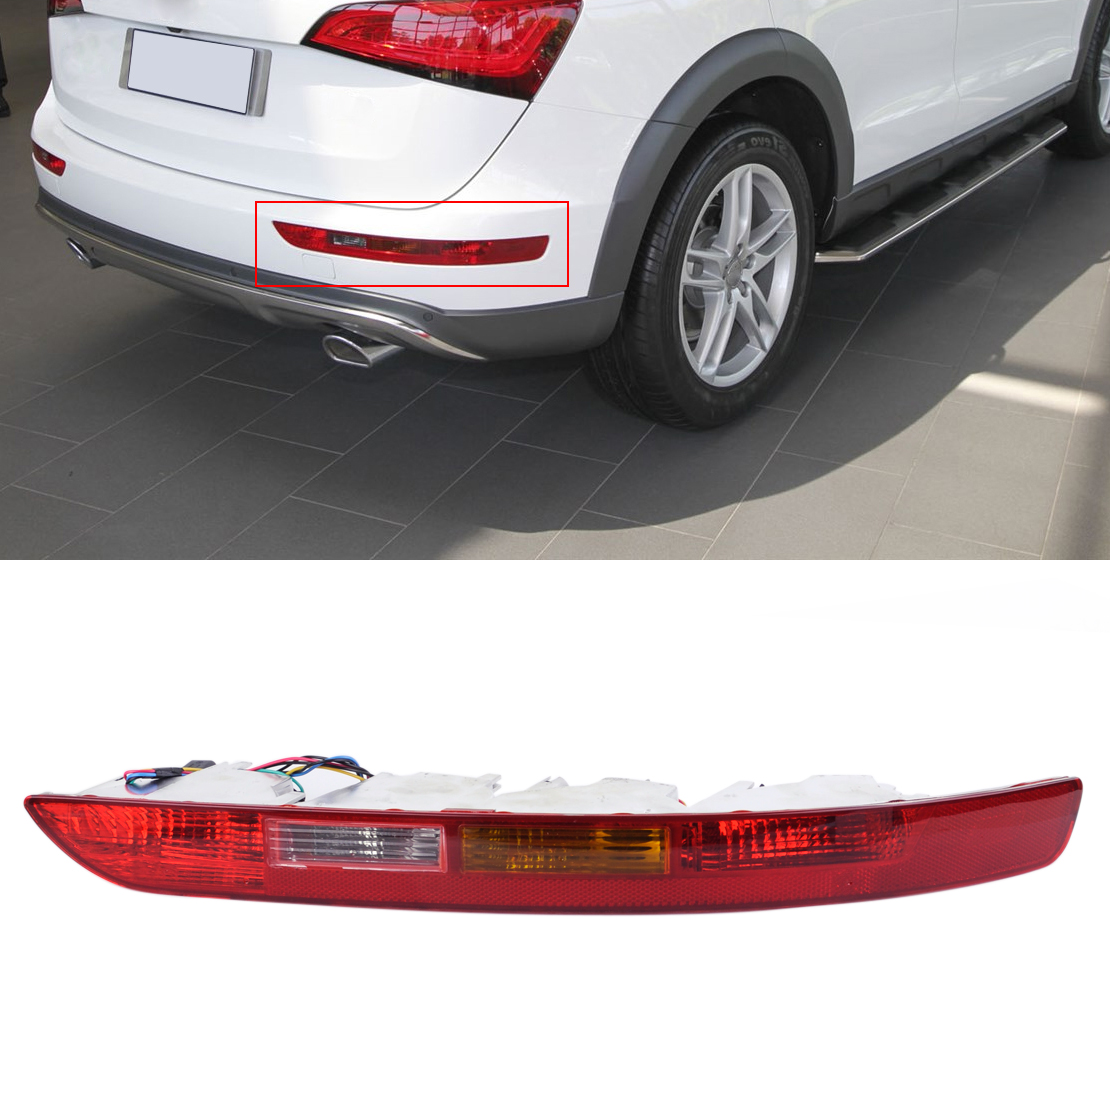 CITALL 8R0945096 Rear Right Side Lower Bumper Tail Light Lamp Reverse Fog Lamp Acc for Audi Q5 2009 - 2012 2013 2014 2015 2016 runmade front lower driving fog light for 2012 audi a4 b9 right side with h8 35w 12v bulbs l8kd 941 700a